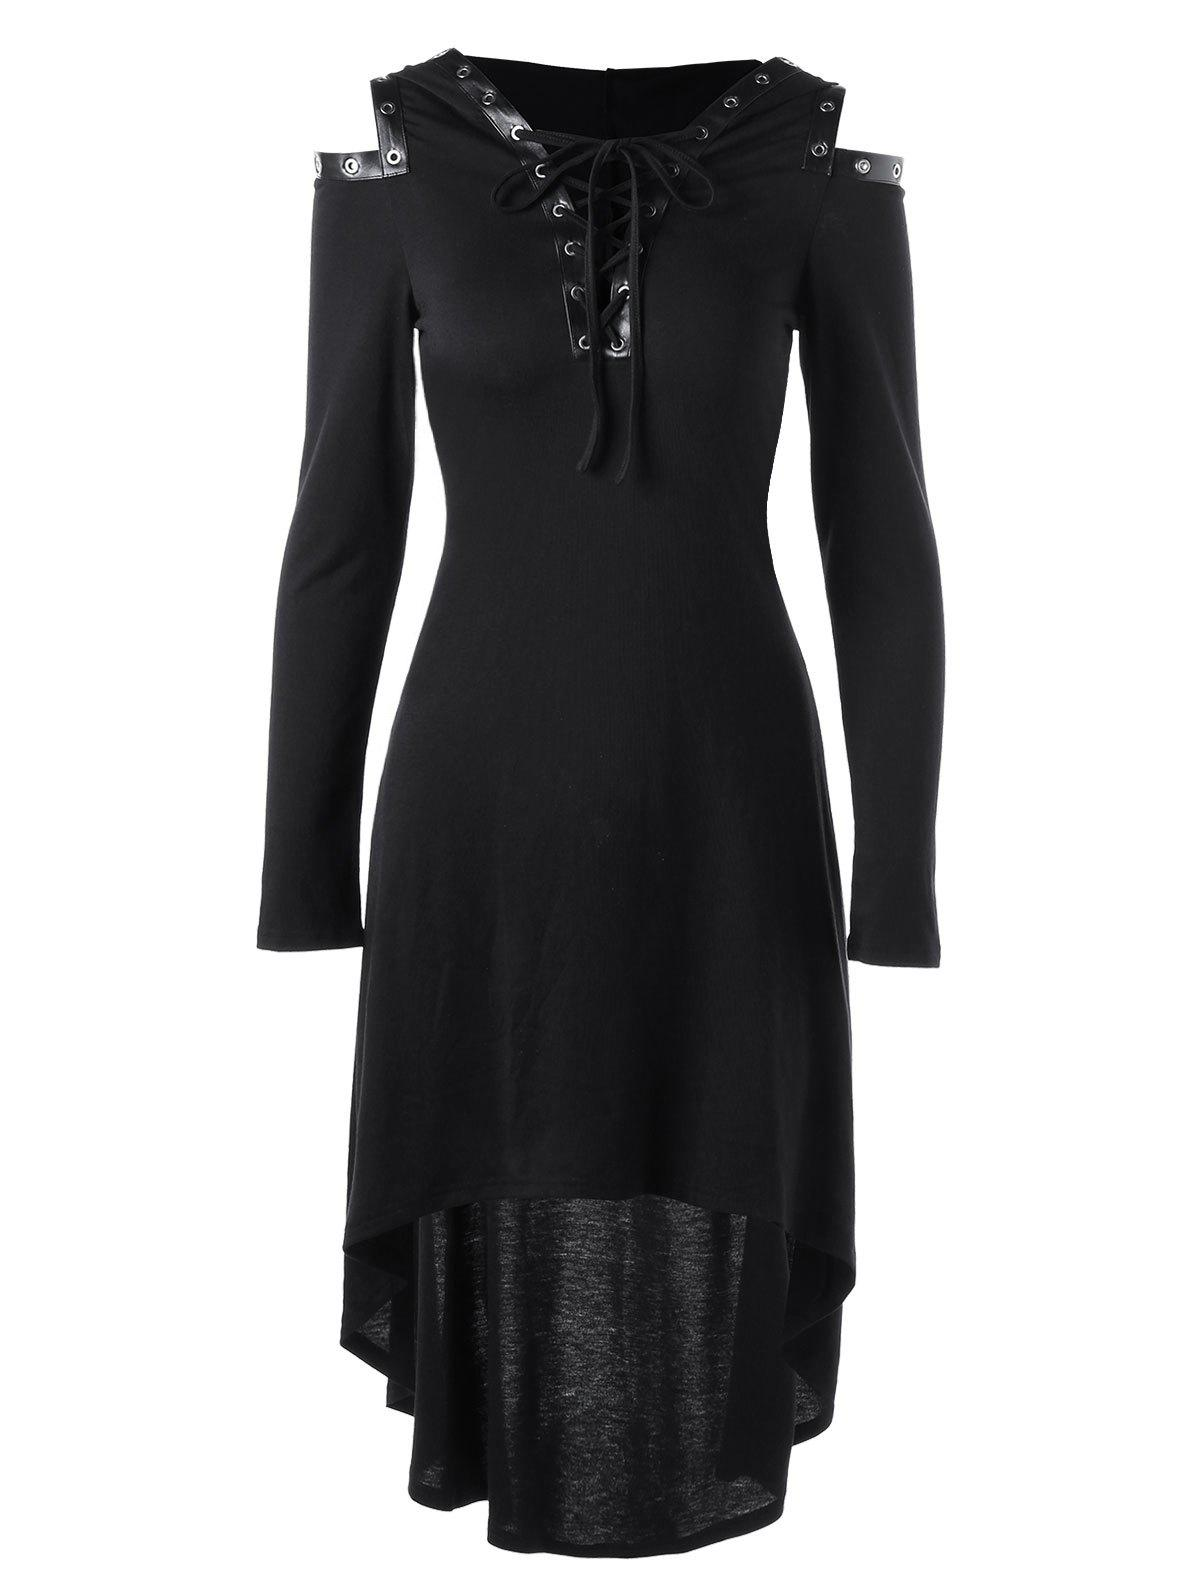 Hooded Lace Up Cold Shoulder DressWOMEN<br><br>Size: 2XL; Color: BLACK; Style: Gothic; Material: Rayon,Spandex; Silhouette: A-Line; Dresses Length: Mid-Calf; Neckline: Plunging Neck; Sleeve Length: Long Sleeves; Pattern Type: Solid Color; With Belt: No; Season: Fall,Spring,Summer; Weight: 0.4000kg; Package Contents: 1 x Dress; Occasion: Casual ,Club,Evening,Going Out,Jersey;